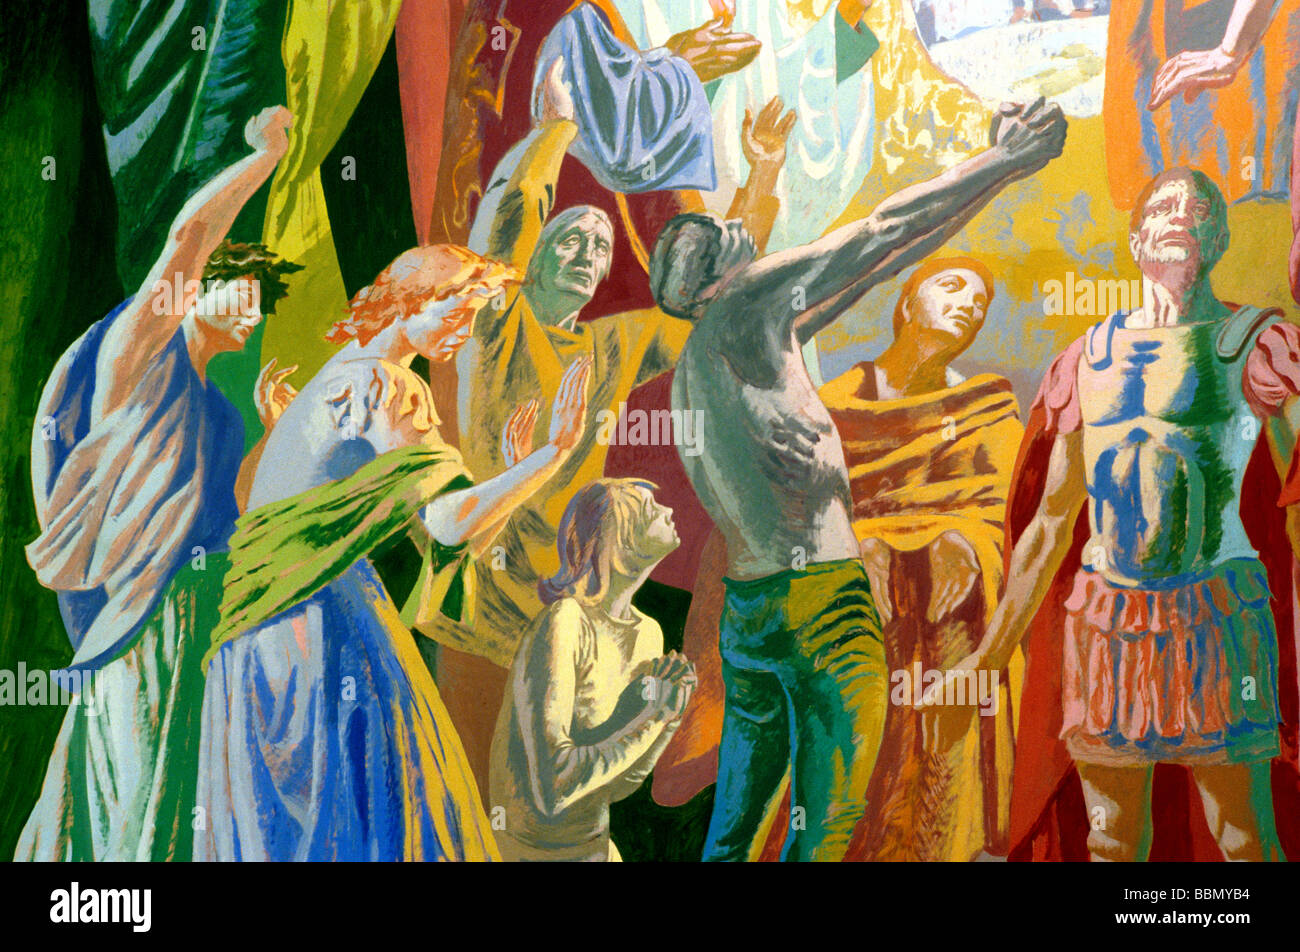 Mural painting by Hans Feibusch St Alban the Martyr church interior Clerkenwell 'The Trinity in Glory', - Stock Image